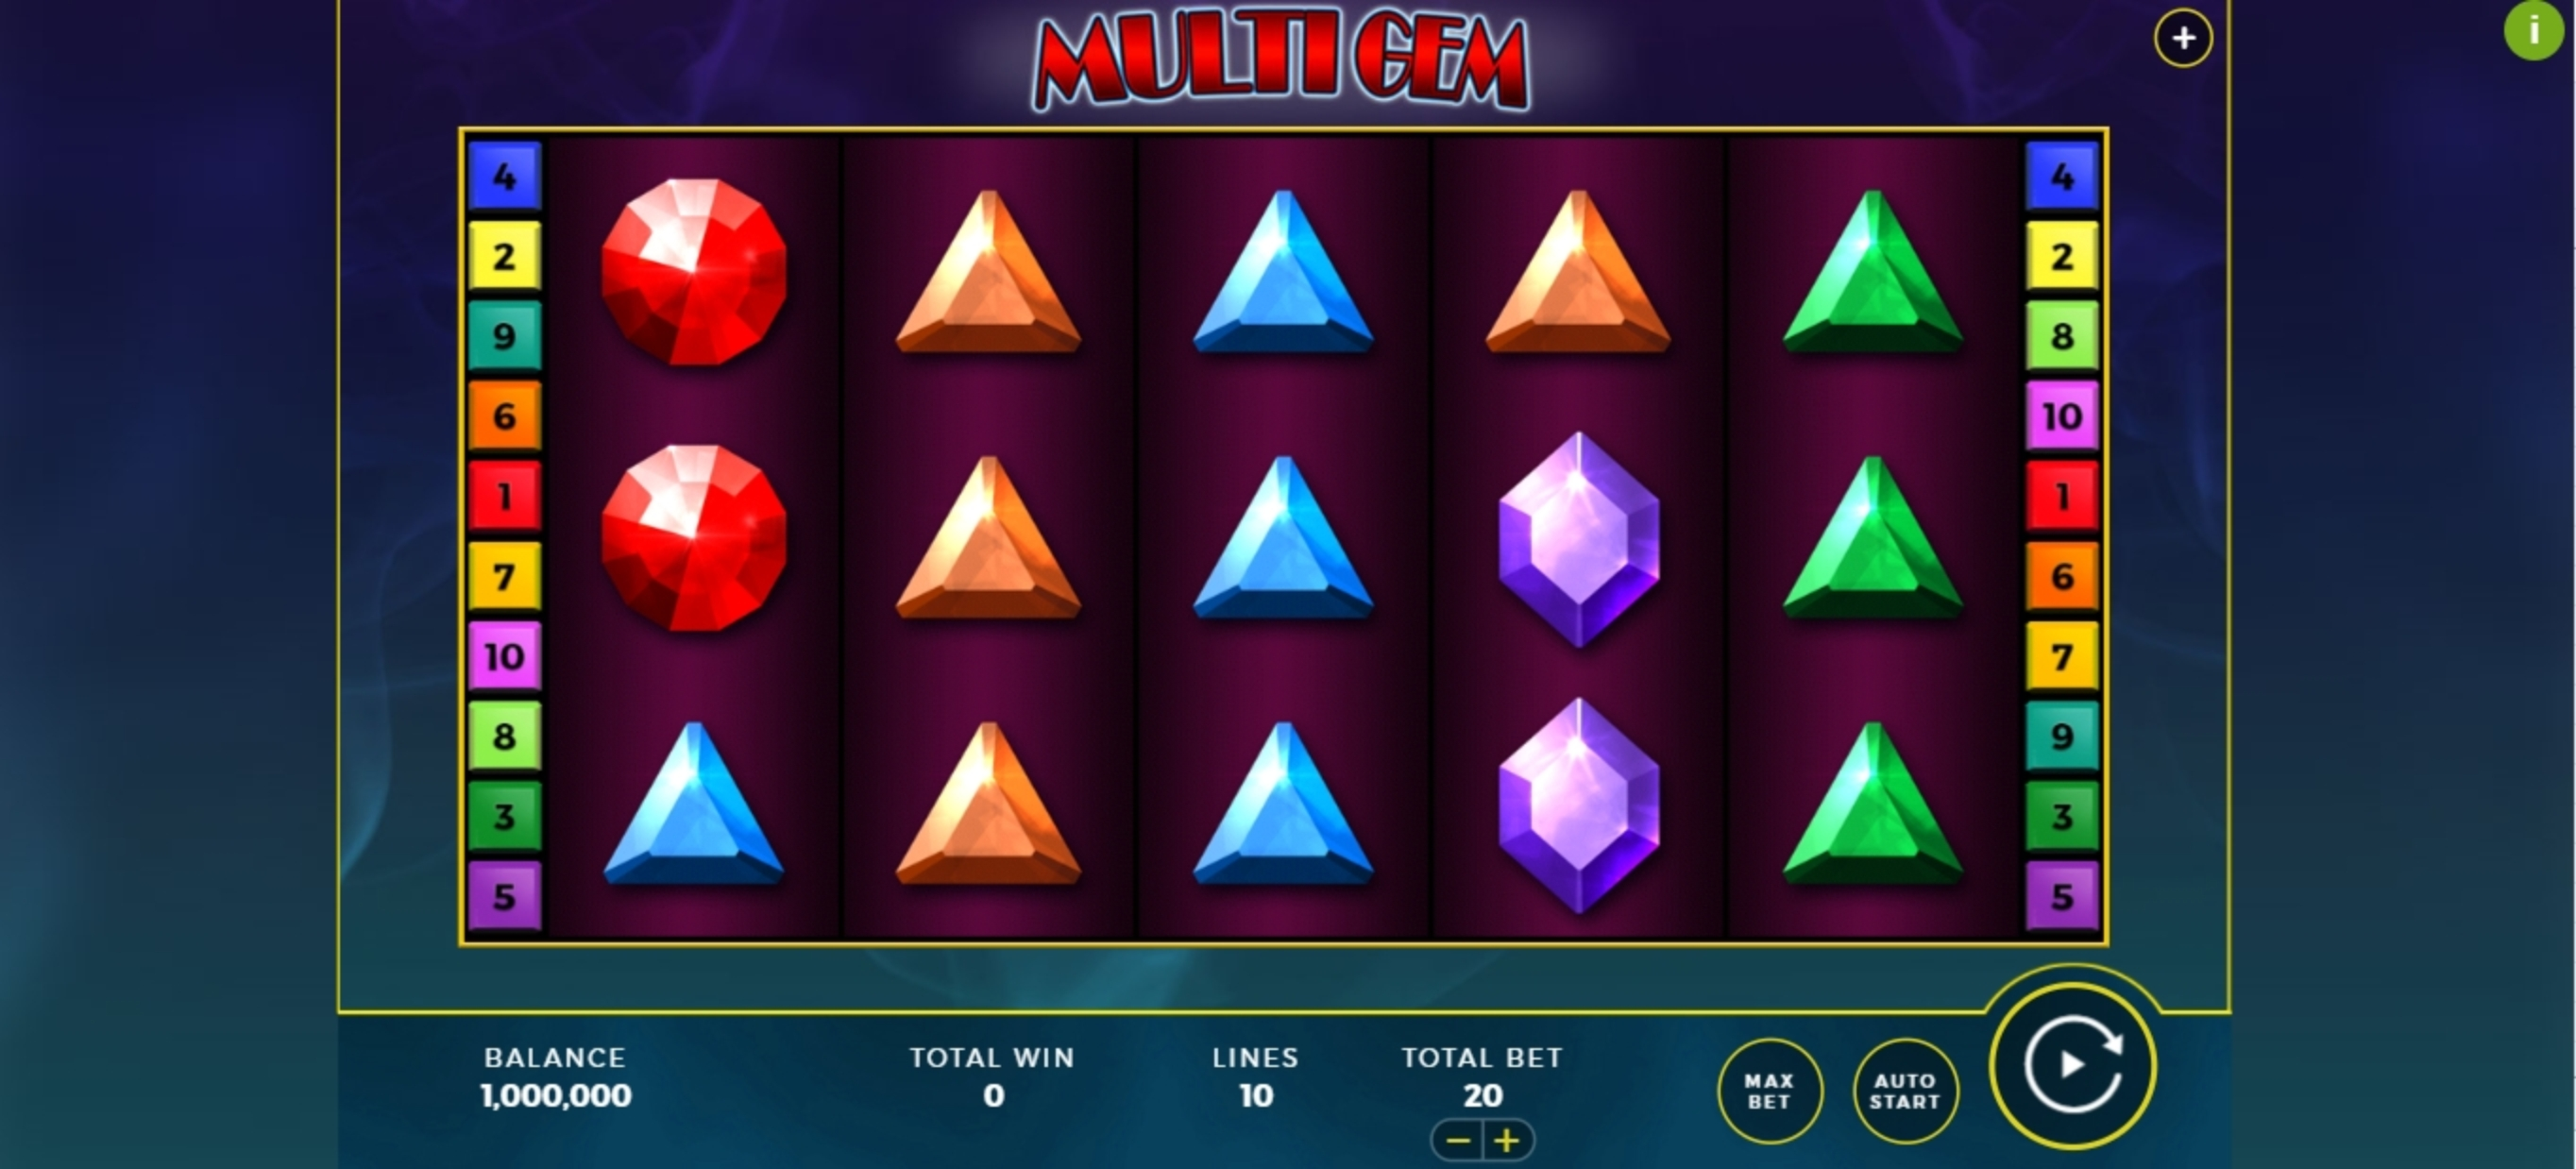 Reels in Multi Gem Slot Game by Bally Wulff